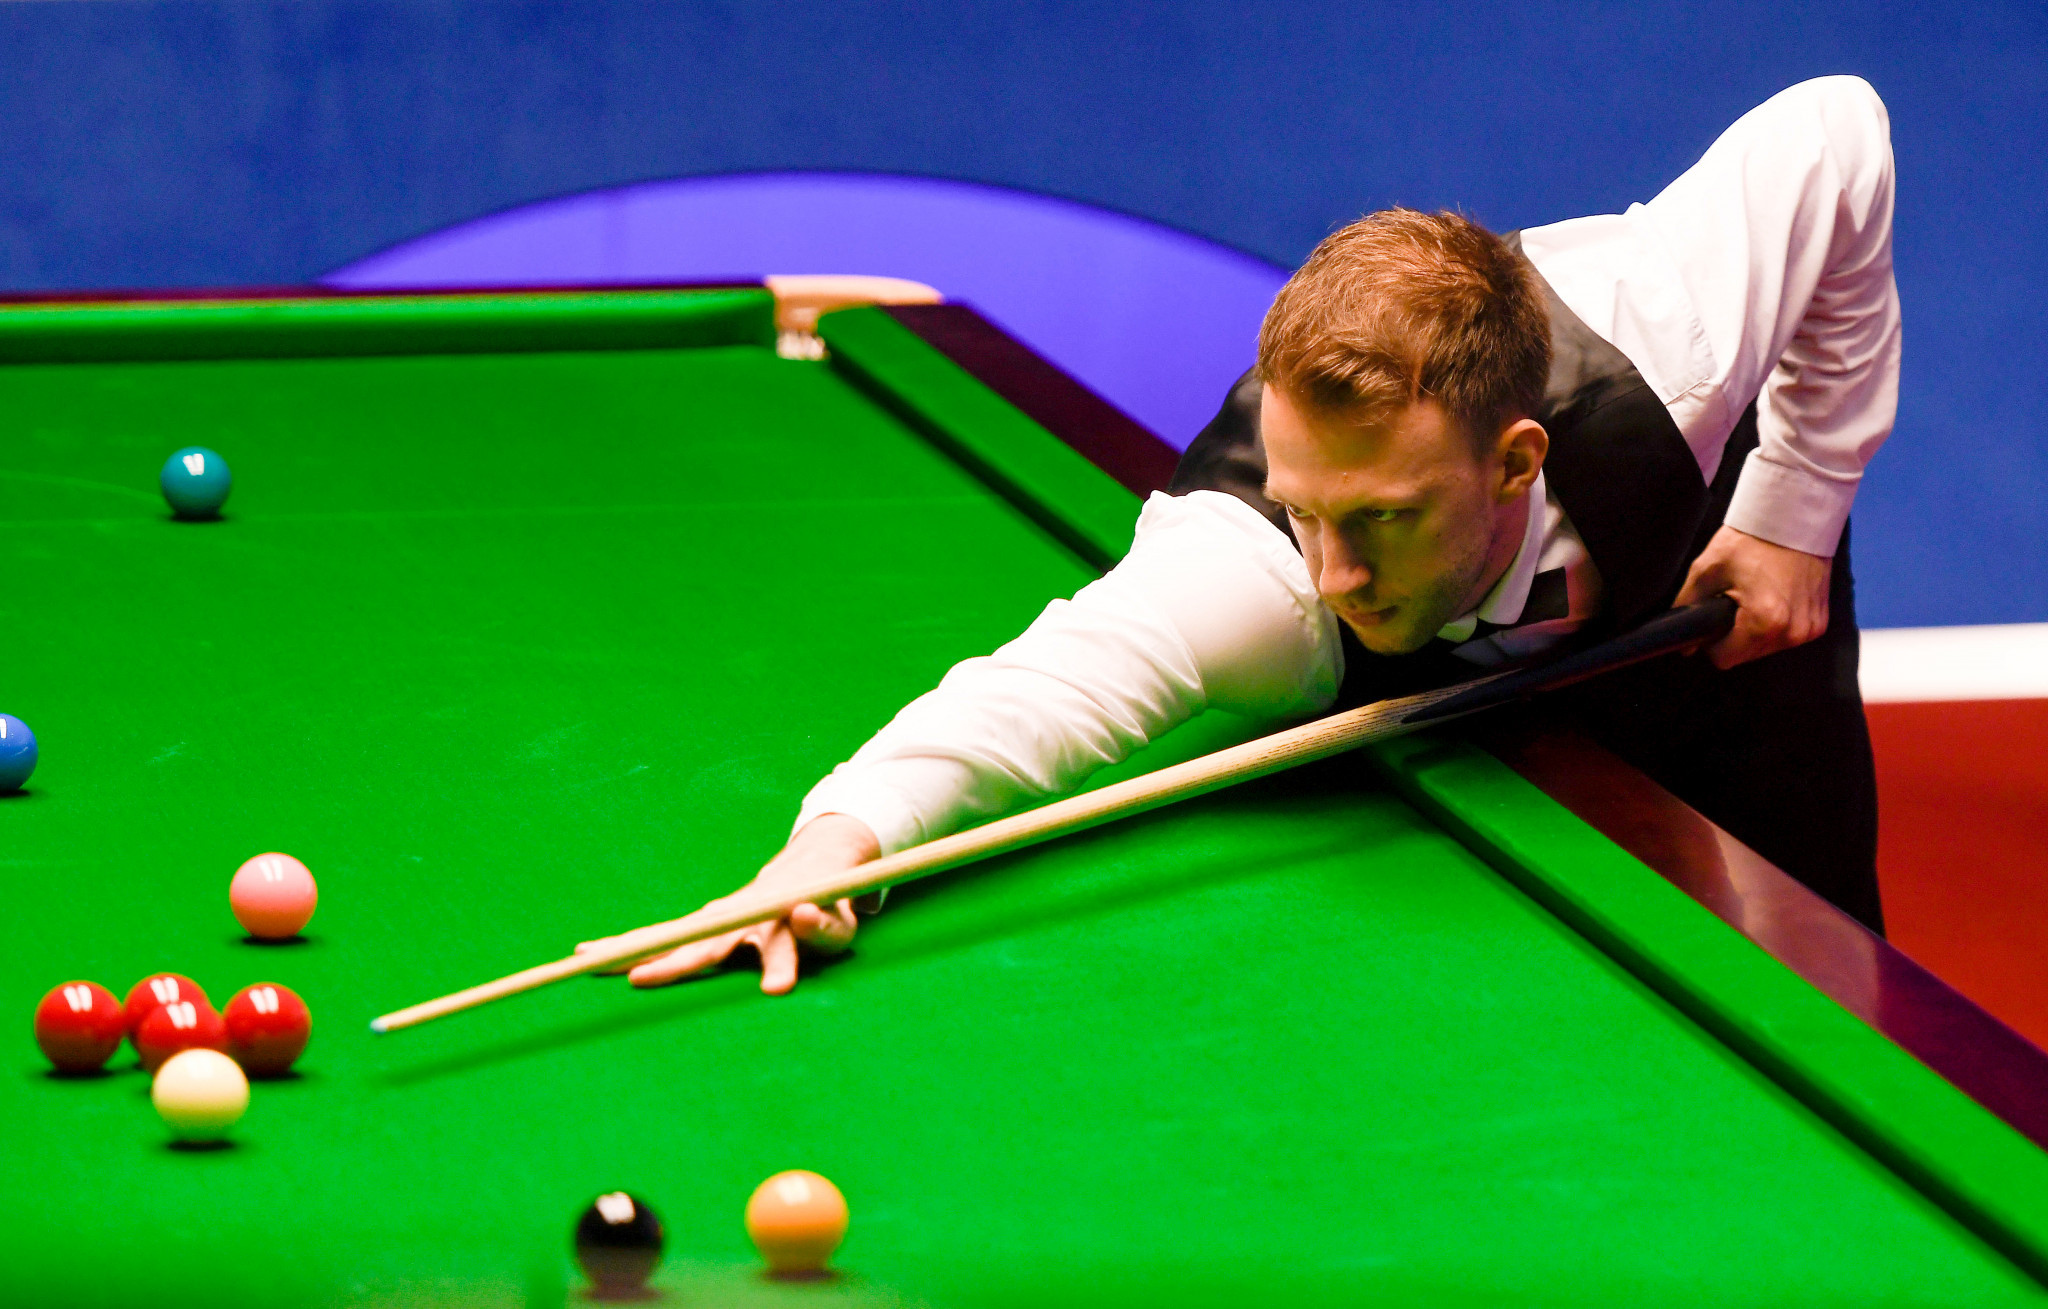 Trump takes big lead against Maguire in World Snooker Championship quarter-final